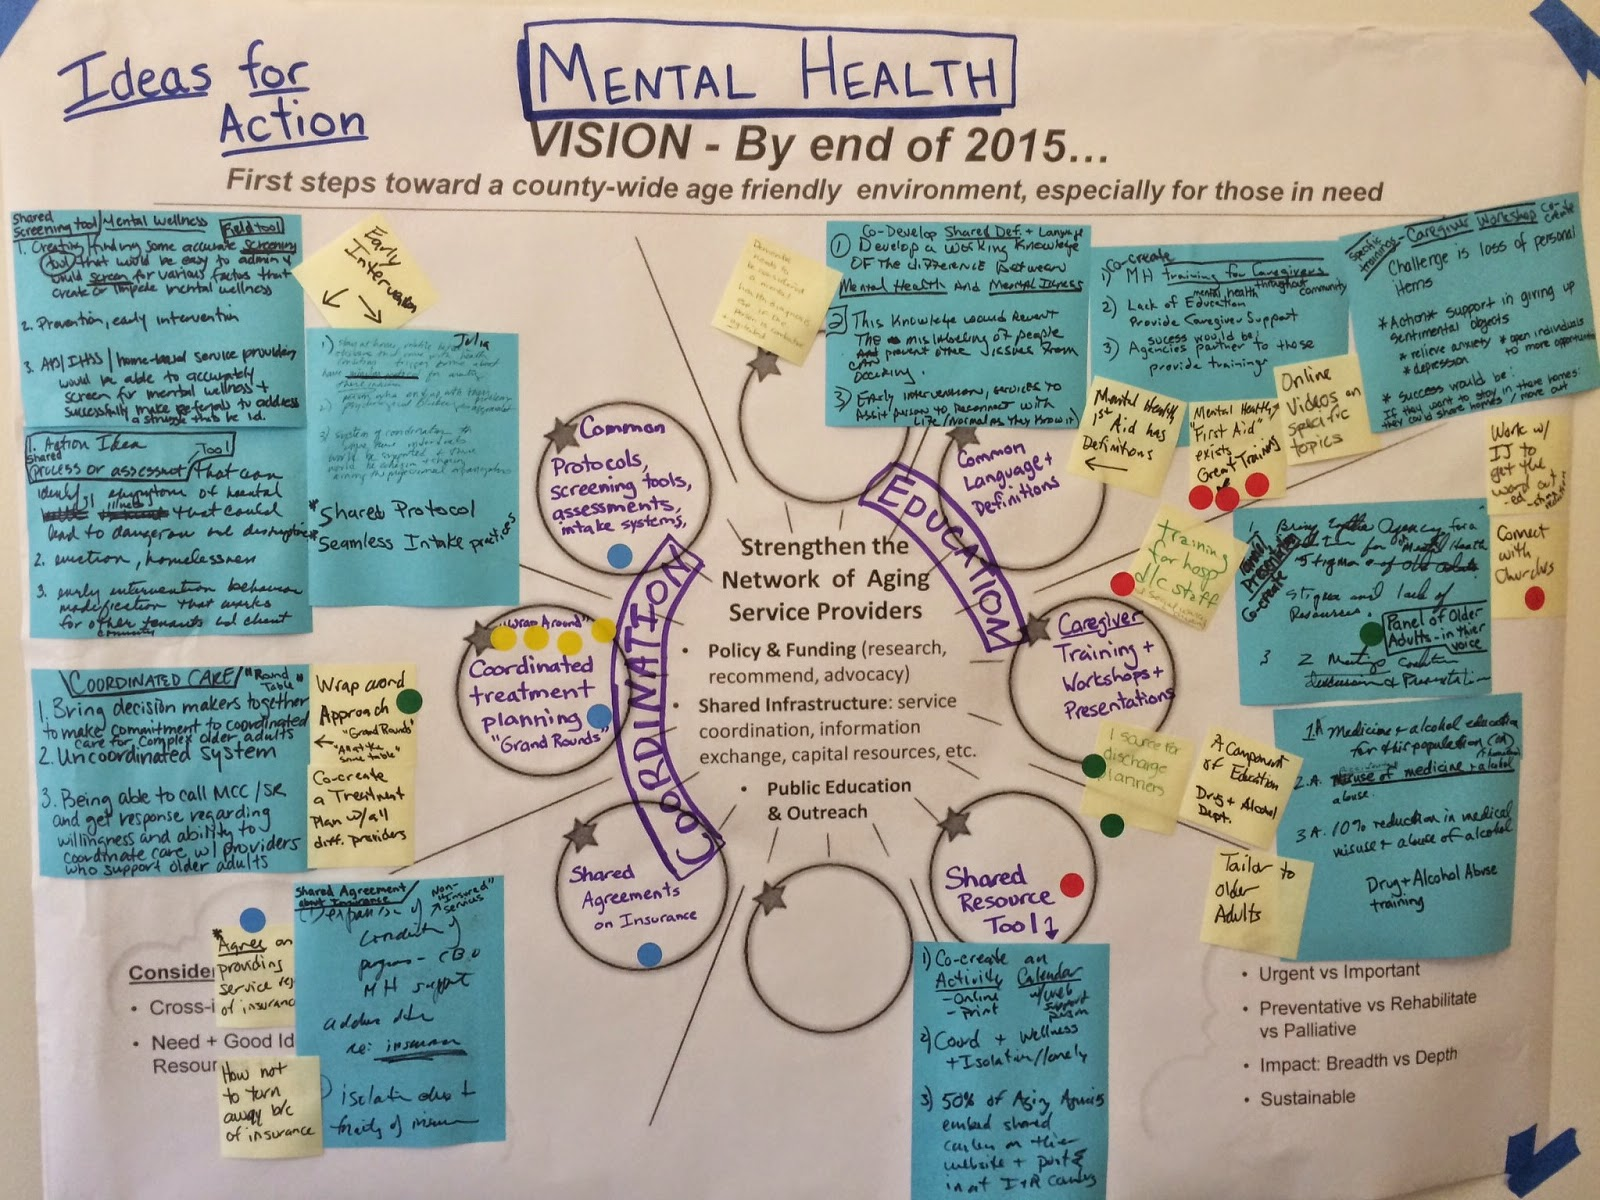 Aging Action Initiative Mental Health Action Ideas Graphic